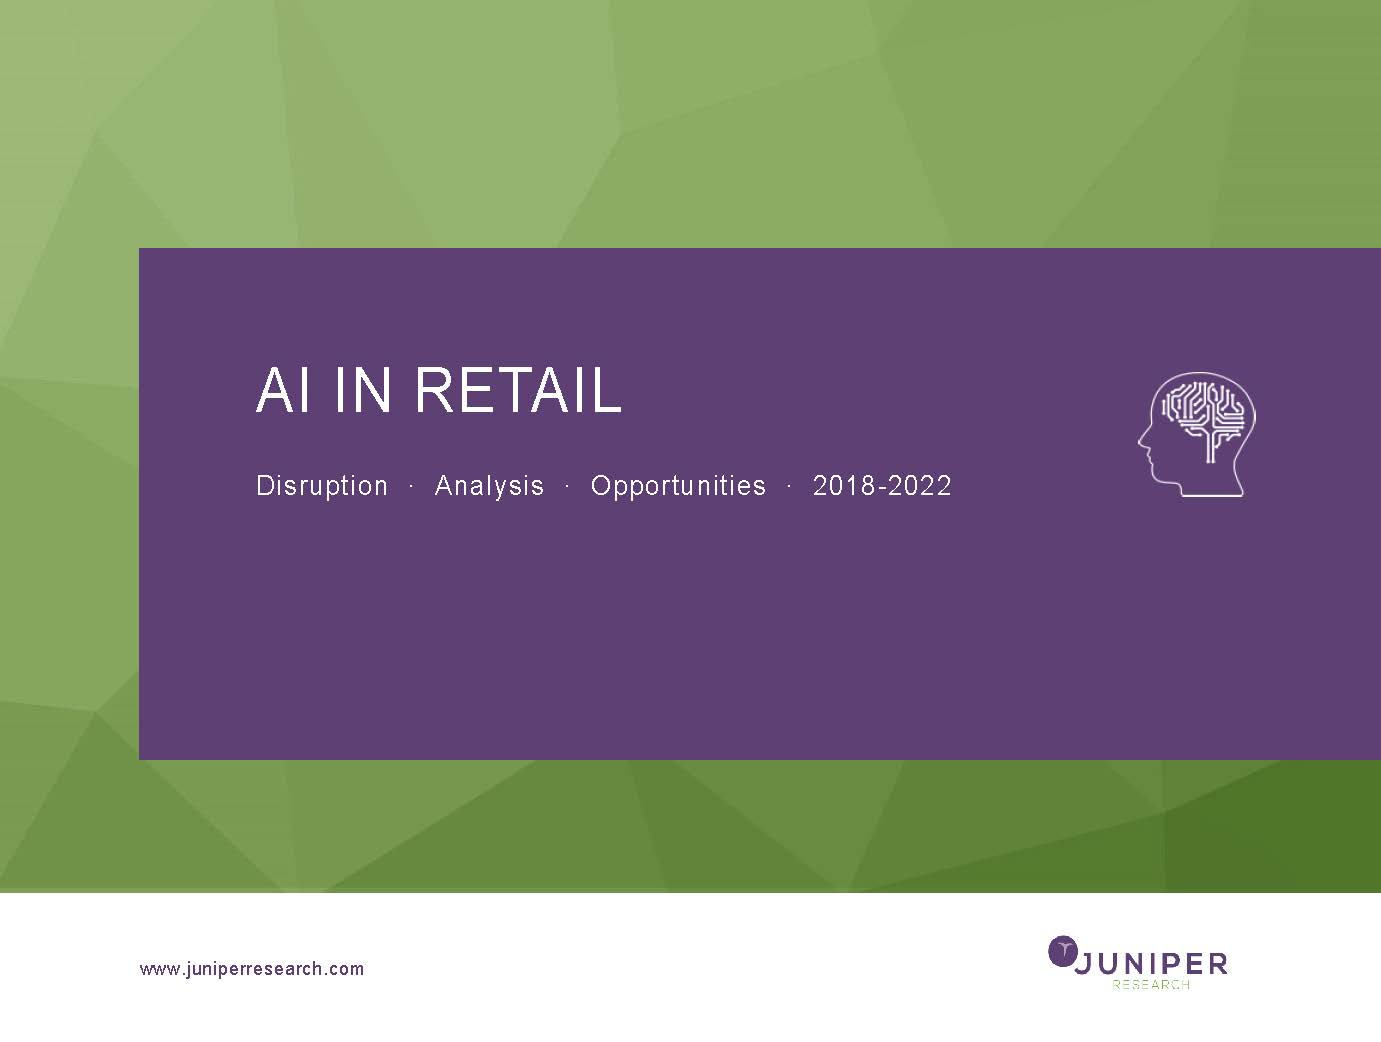 AI in Retail Full Research Suite | Fintech & Payments